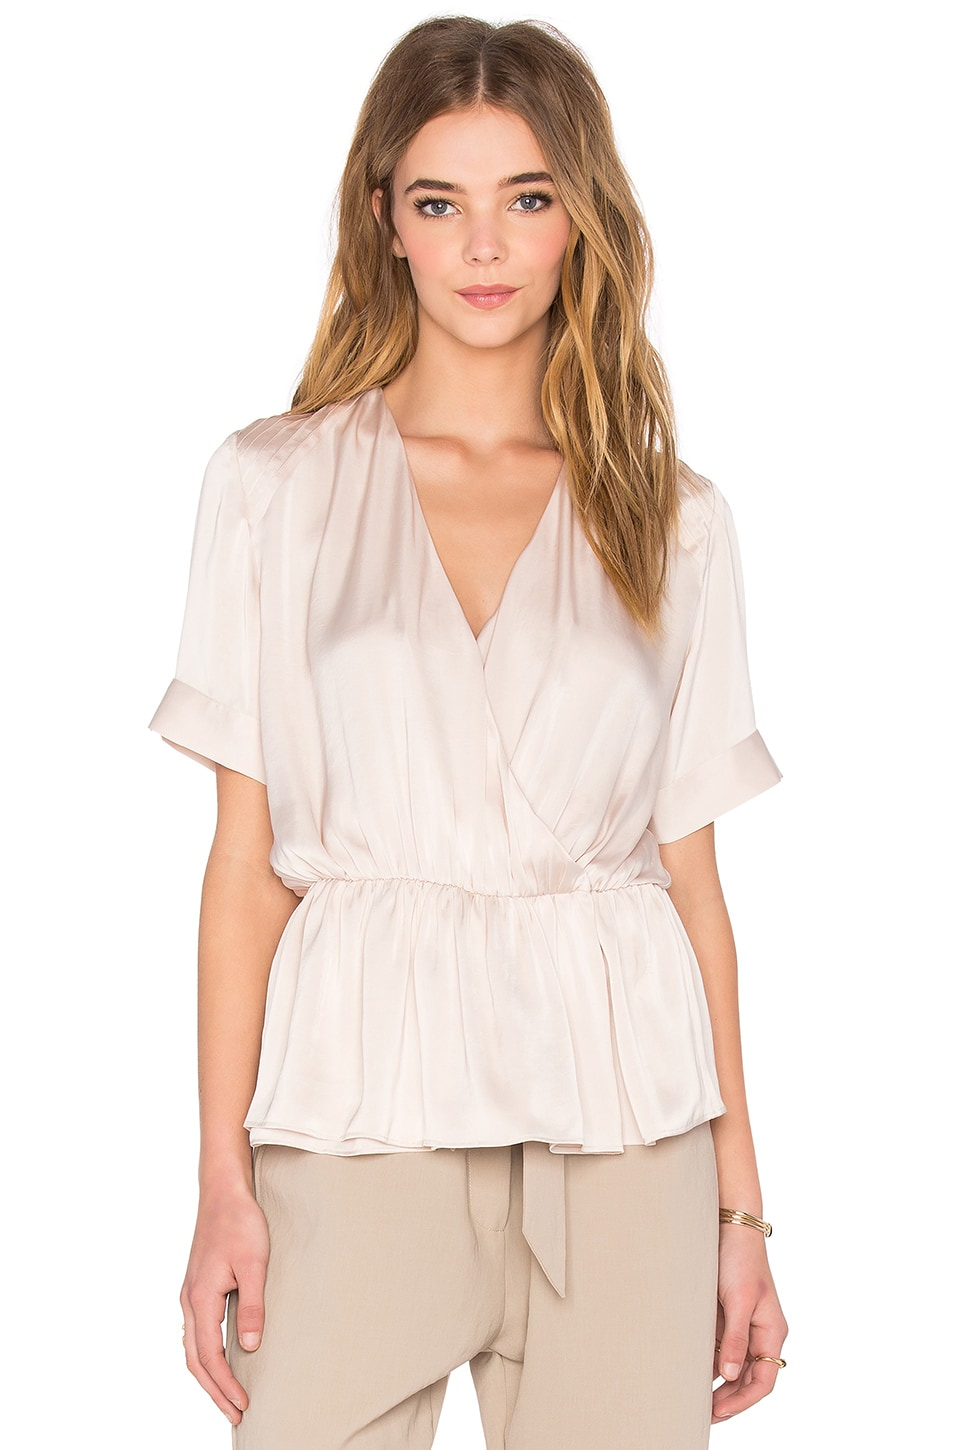 NATIVE STRANGER Pleated Wrapped Blouse in Dusty Pink